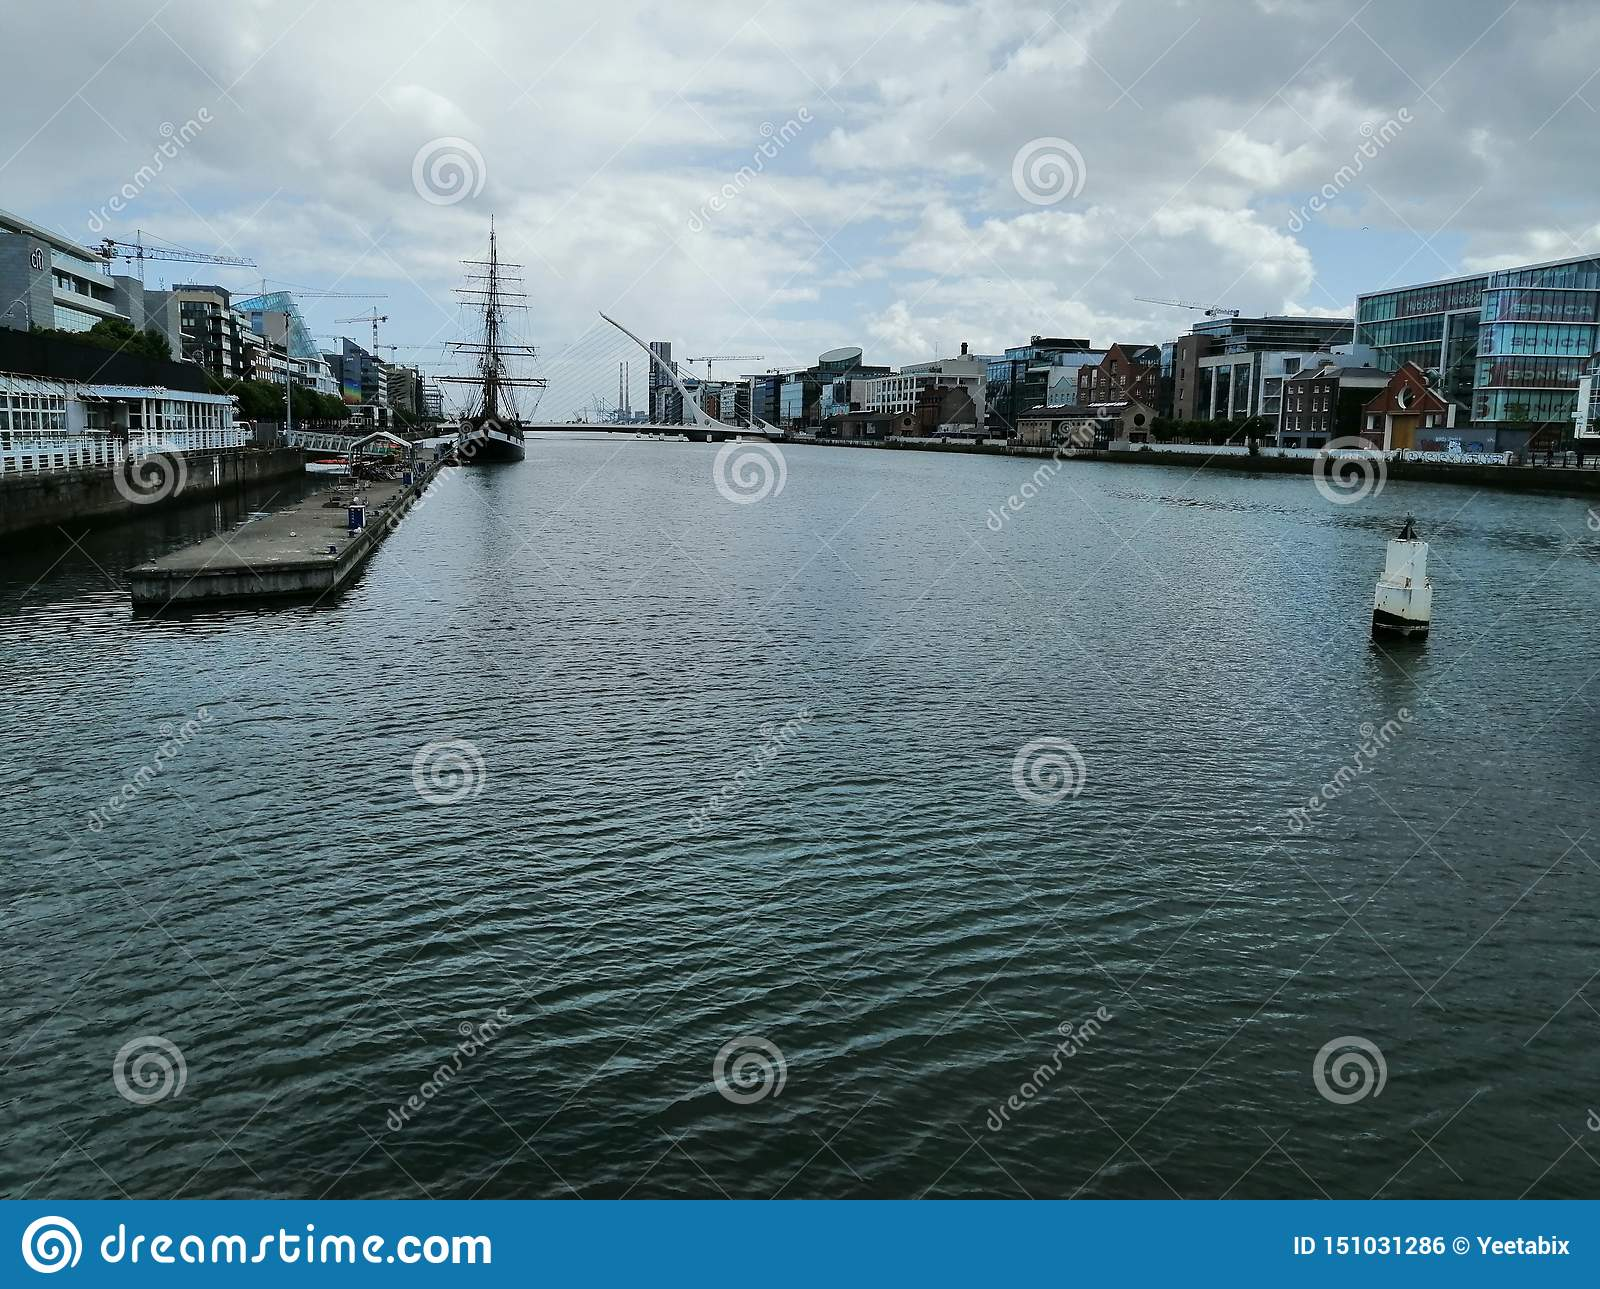 River Liffey With buildings in background